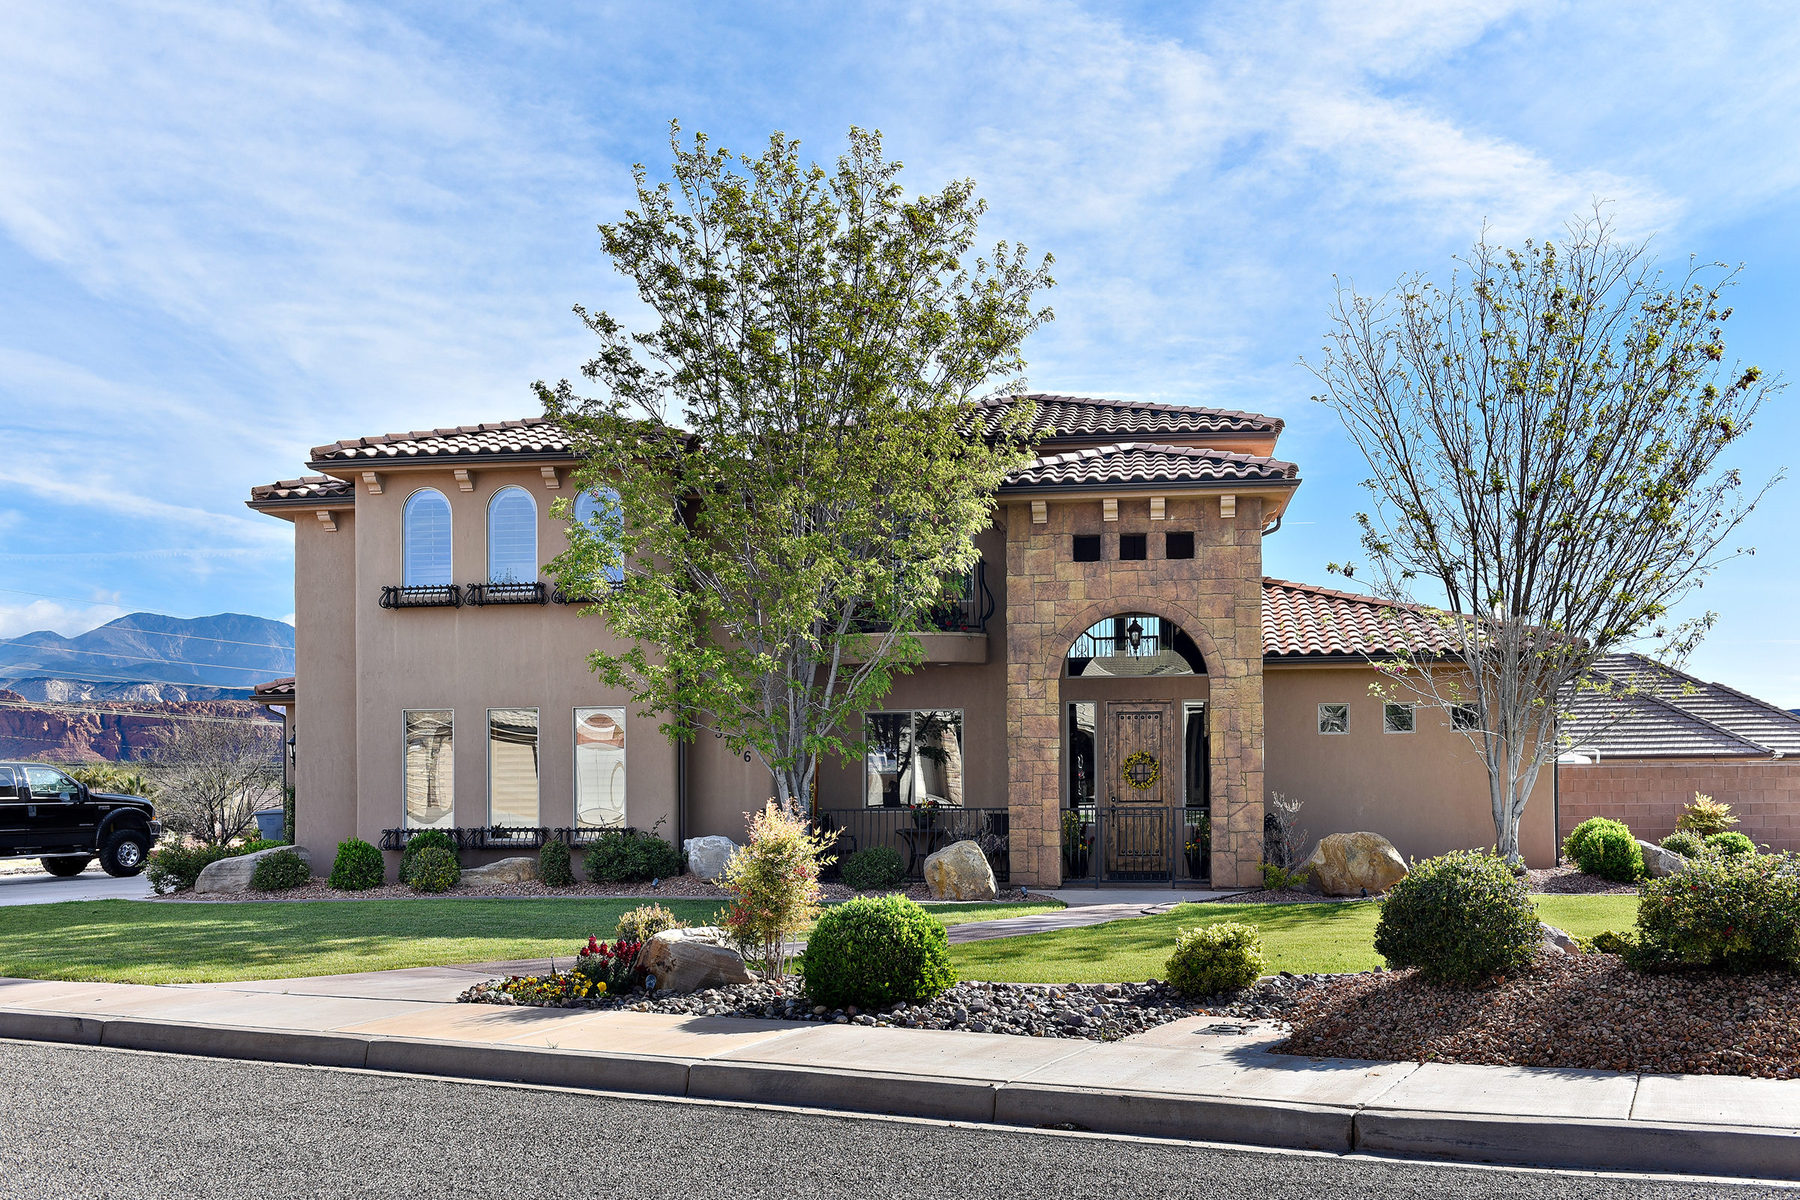 Single Family Home for Sale at Beautiful home in one of the best areas of Santa Clara! 3736 Sagebrush Dr Santa Clara, Utah 84765 United States